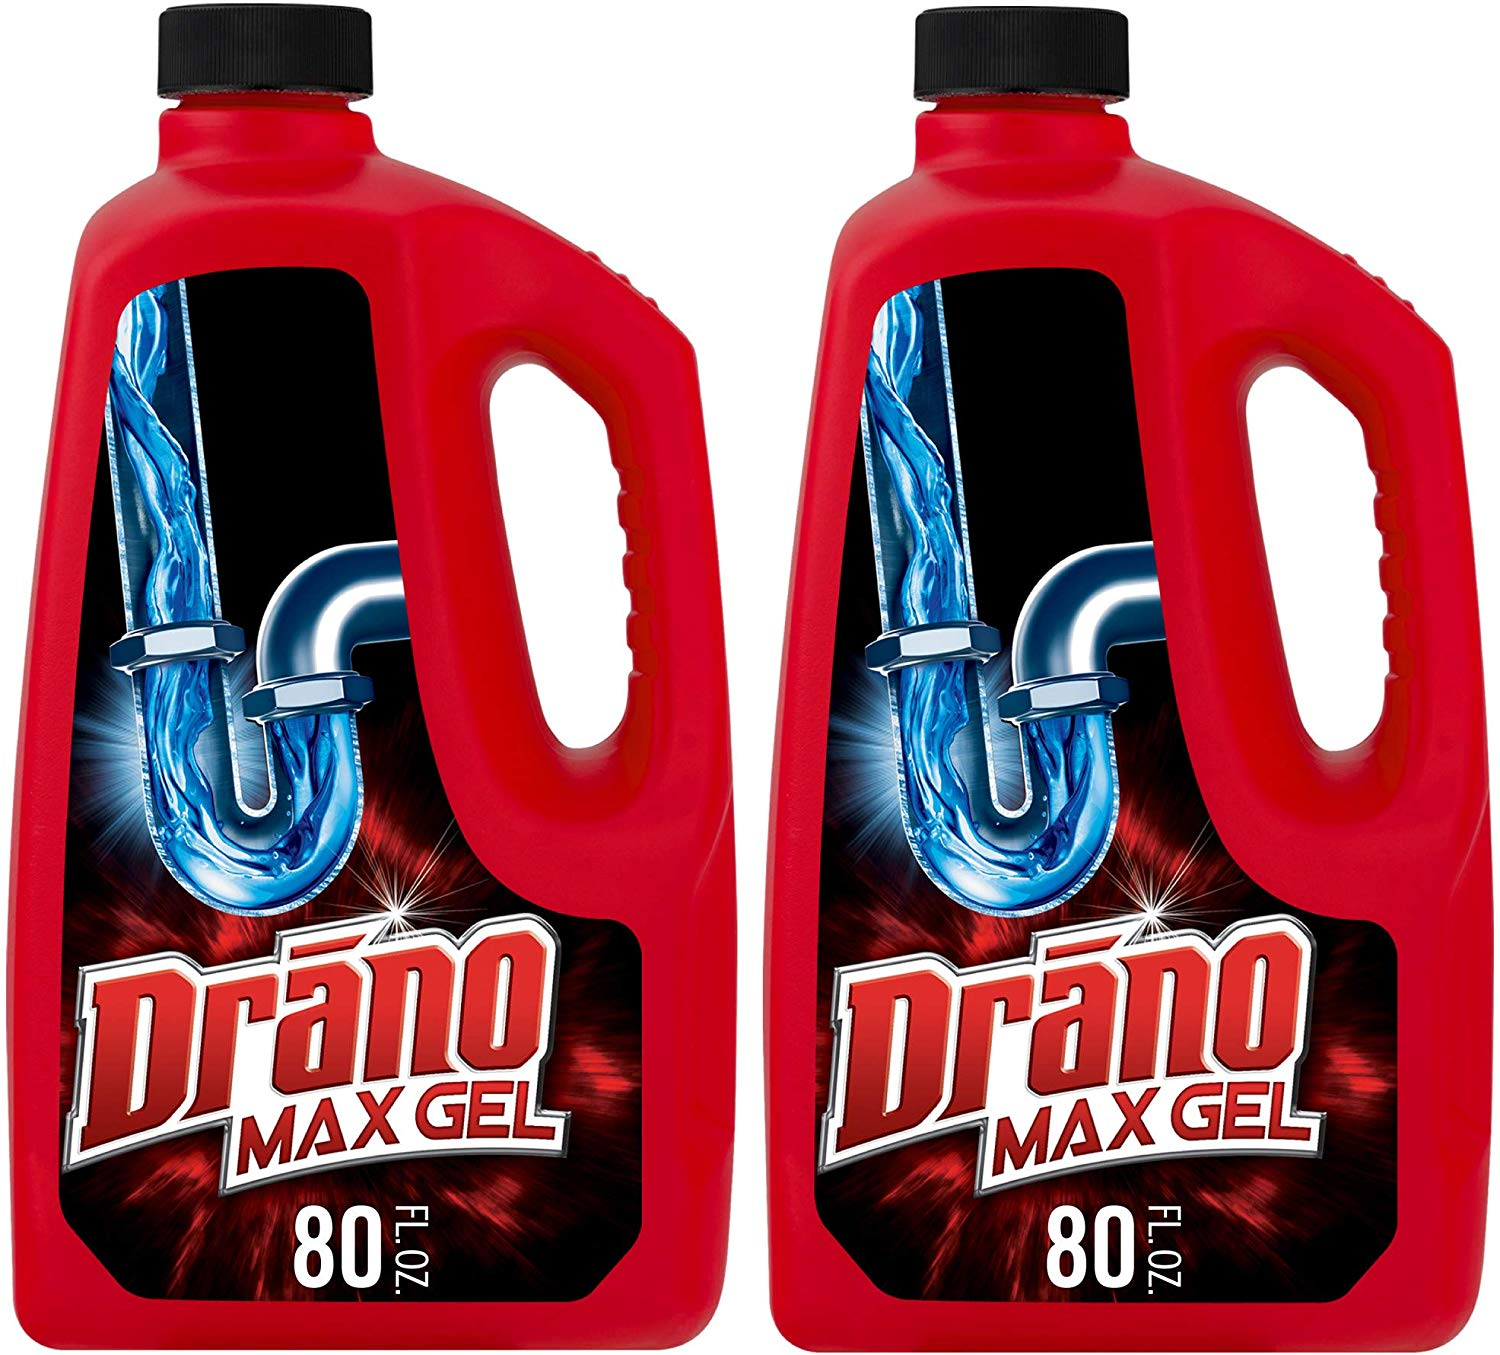 Best Drain Cleaner: Drano Max Gel